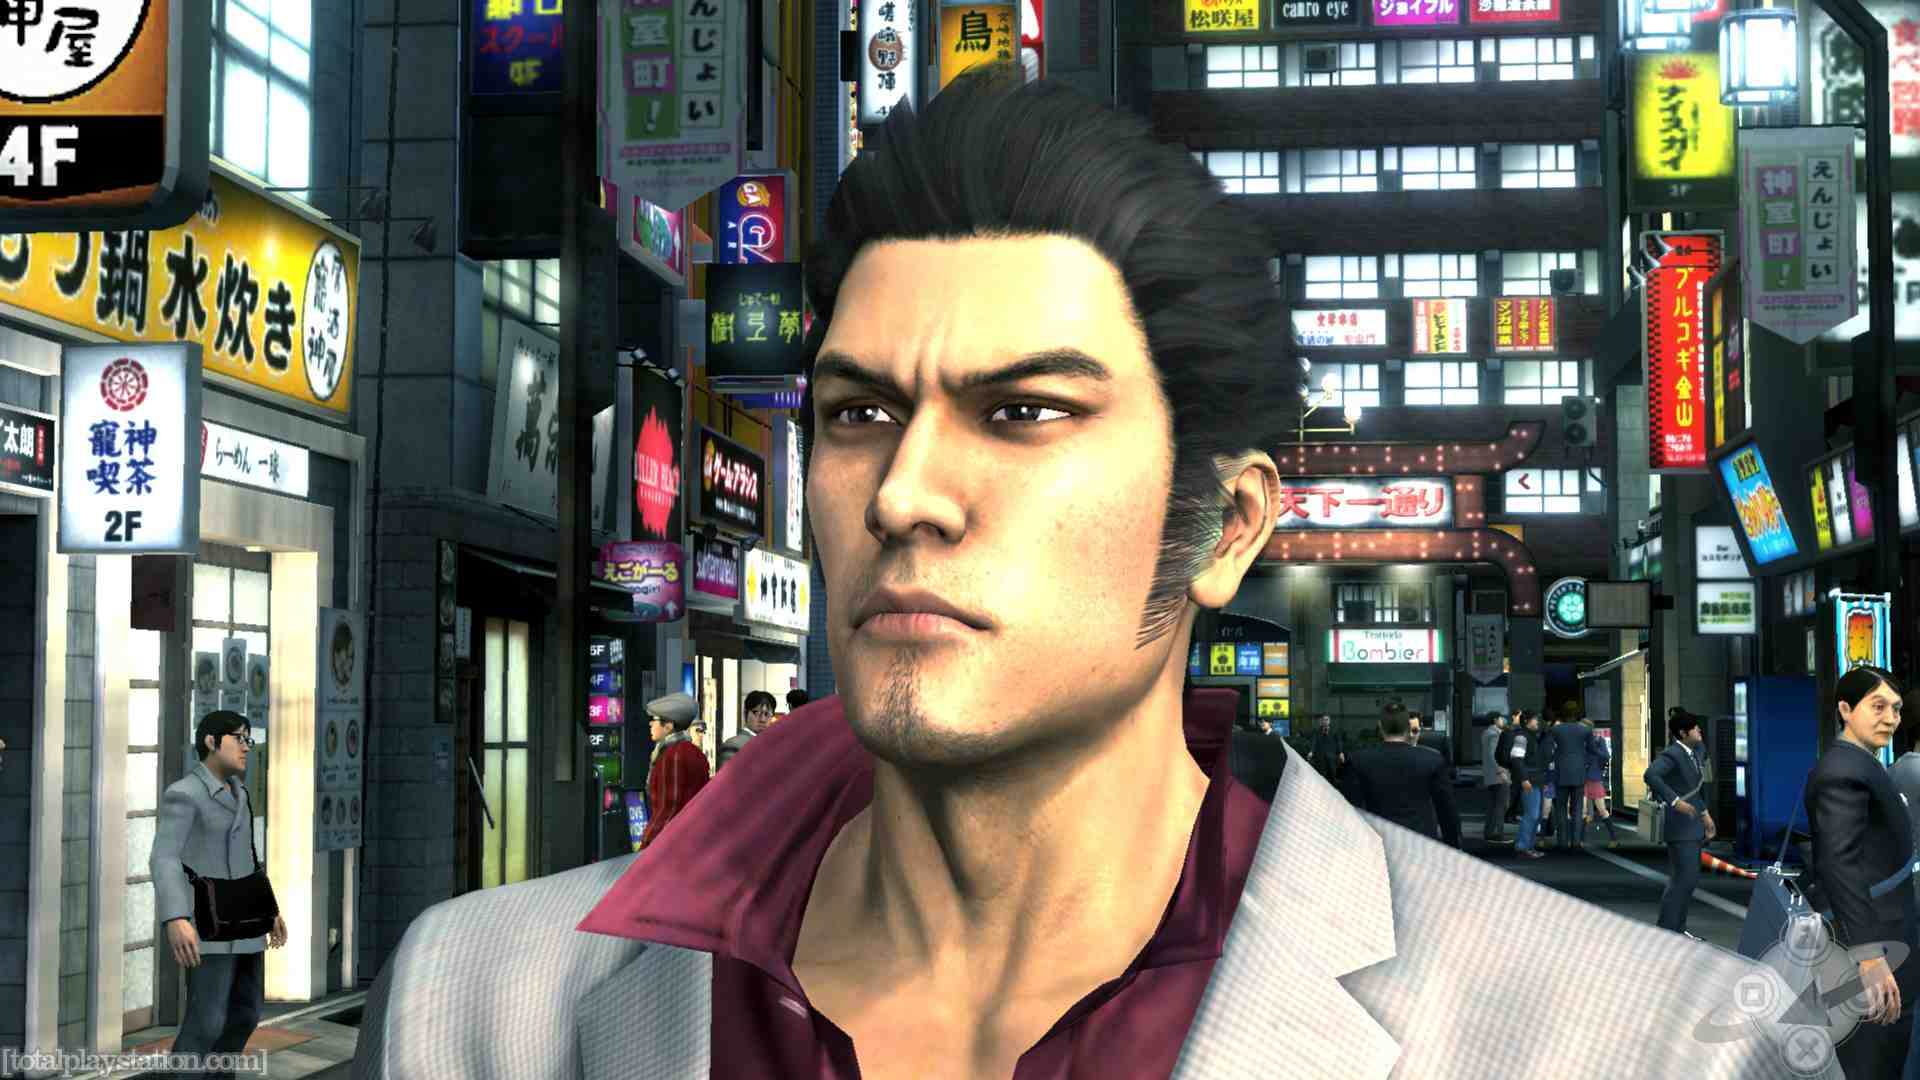 Yakuza HD on Wii U commercial from Japan